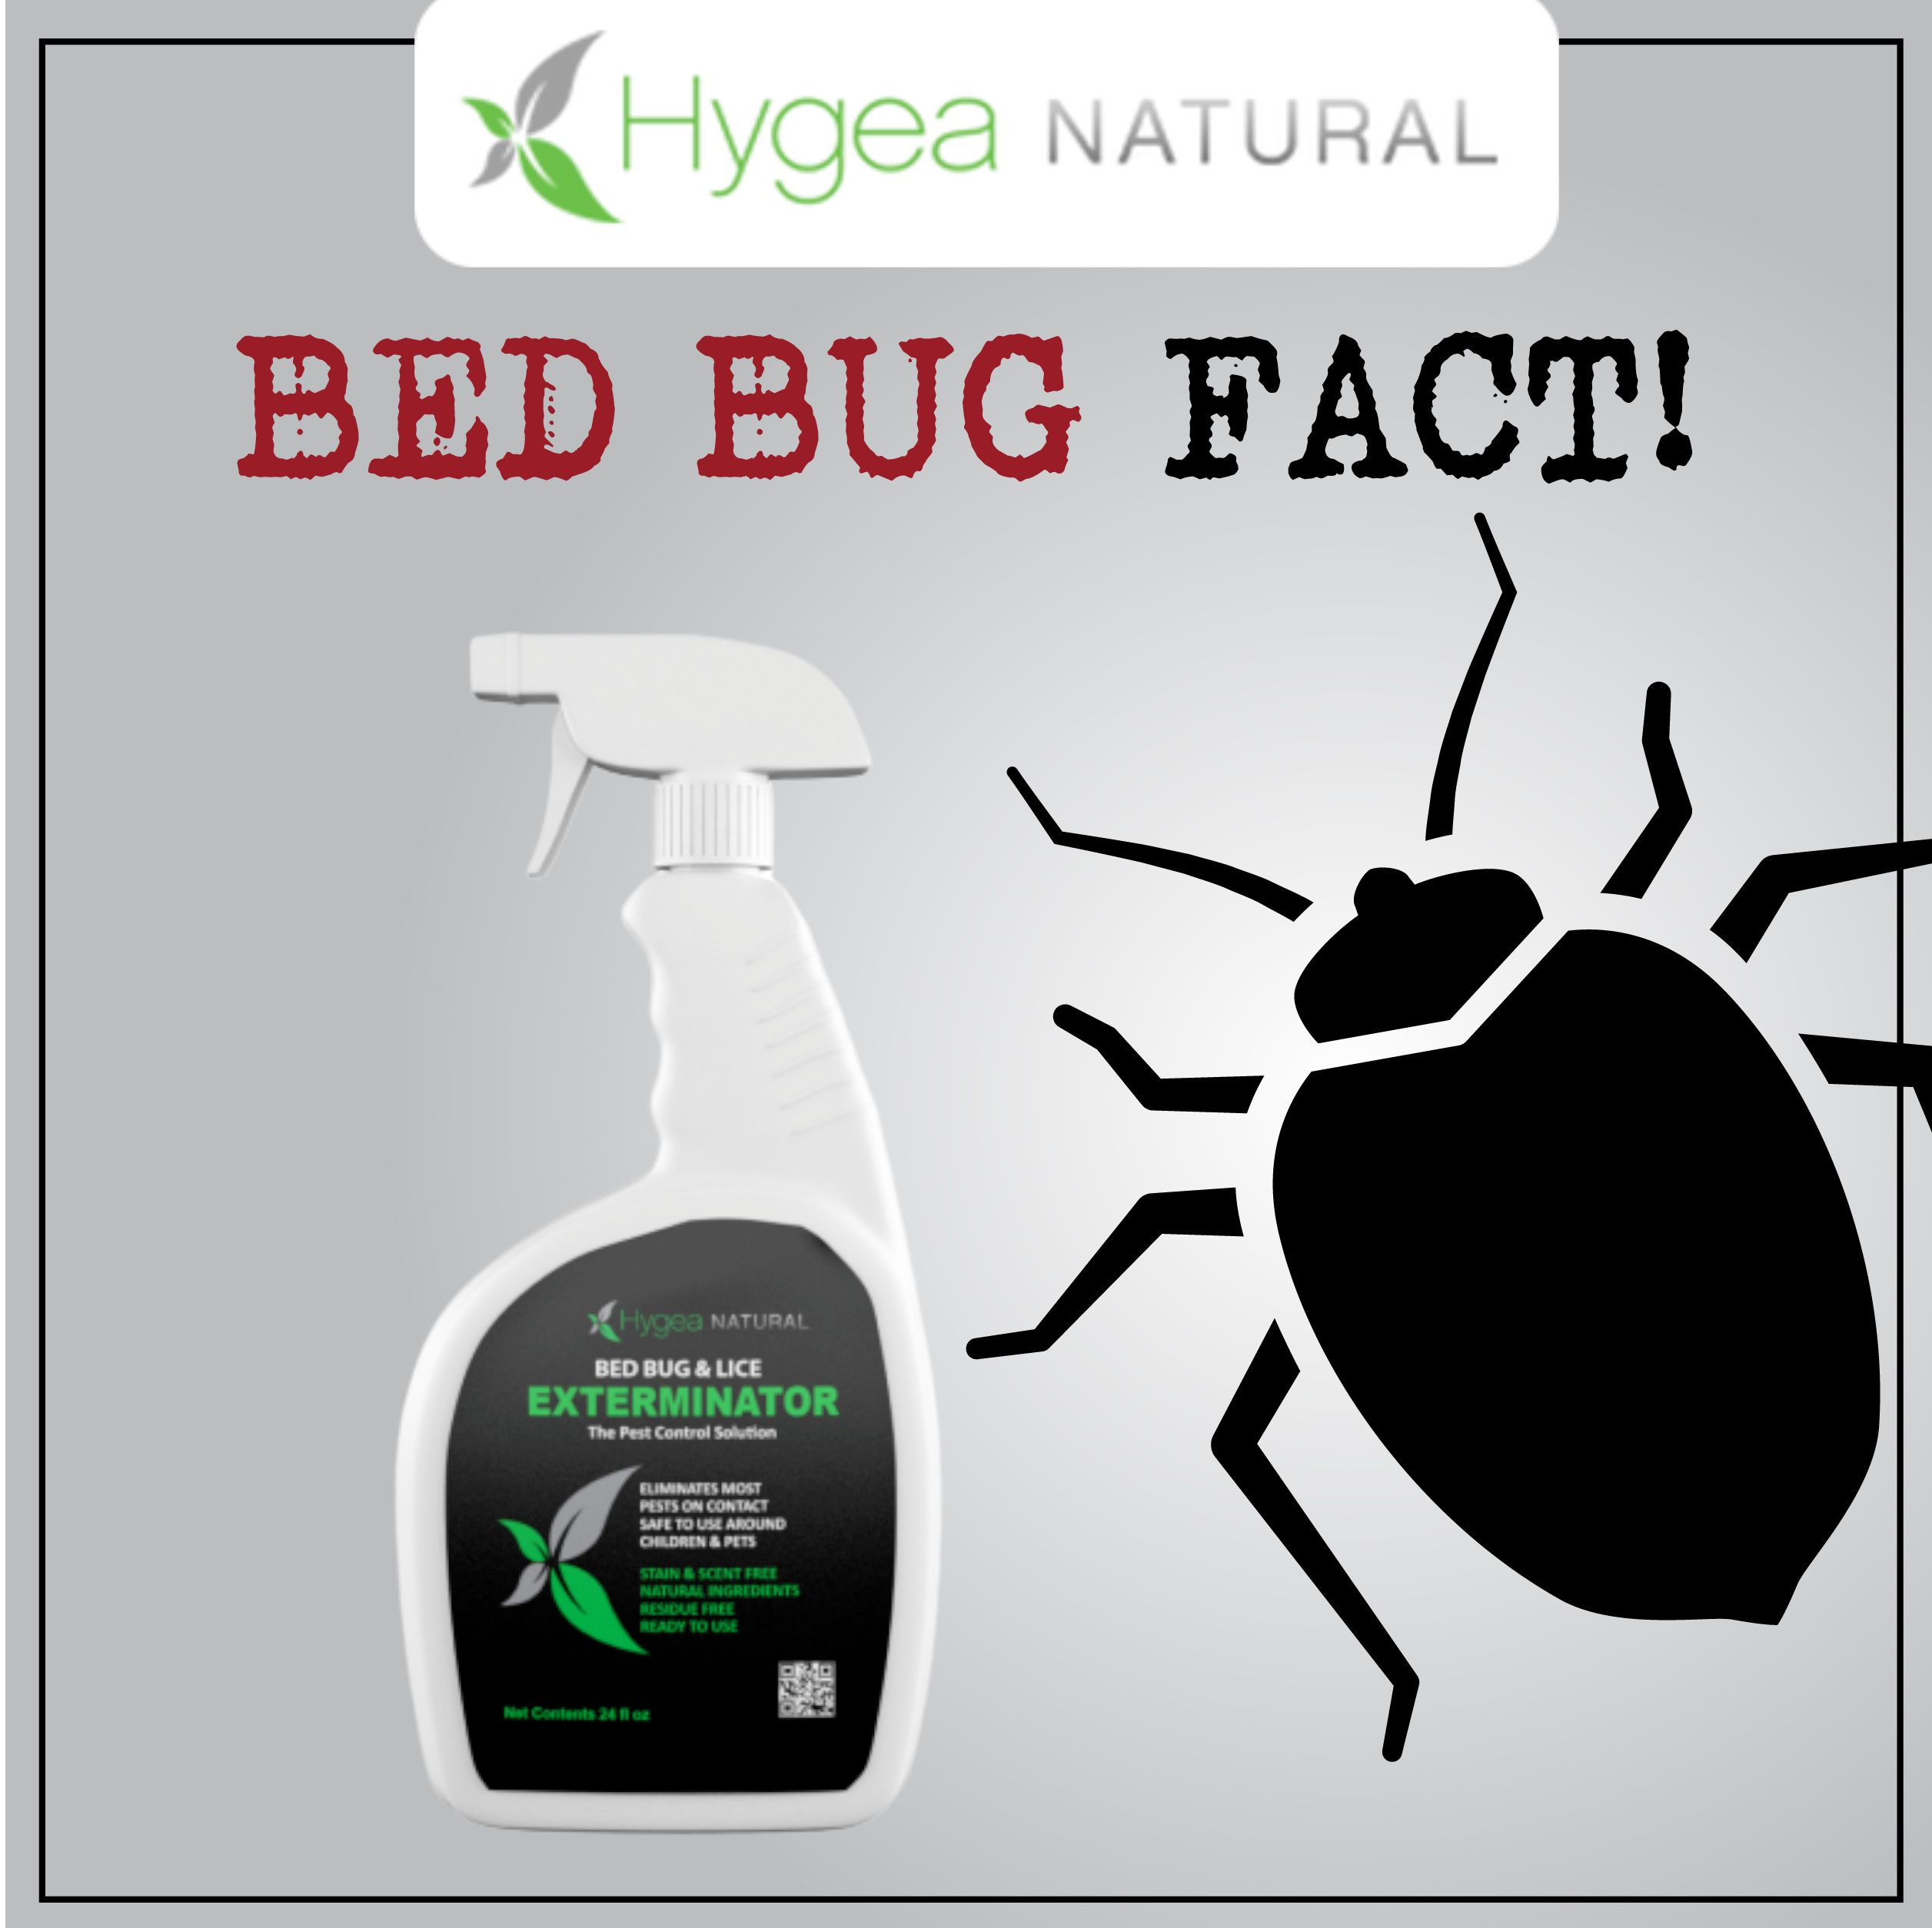 The Hygea Natural 24 oz bed bug spray is a must have